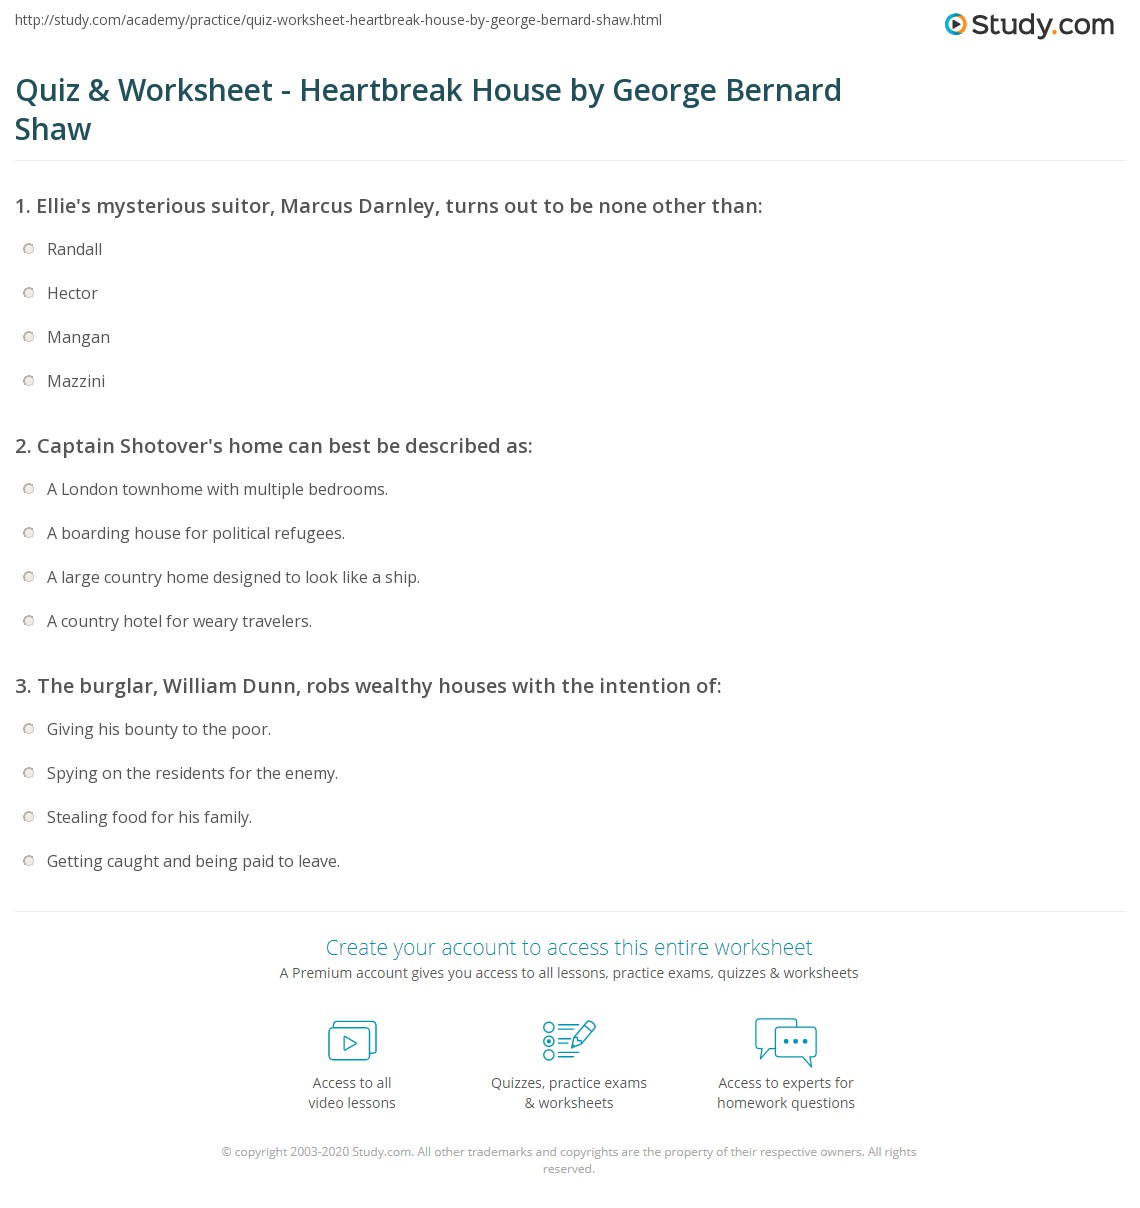 quiz worksheet heartbreak house by george bernard shaw com print heartbreak house by george bernard shaw summary analysis characters worksheet